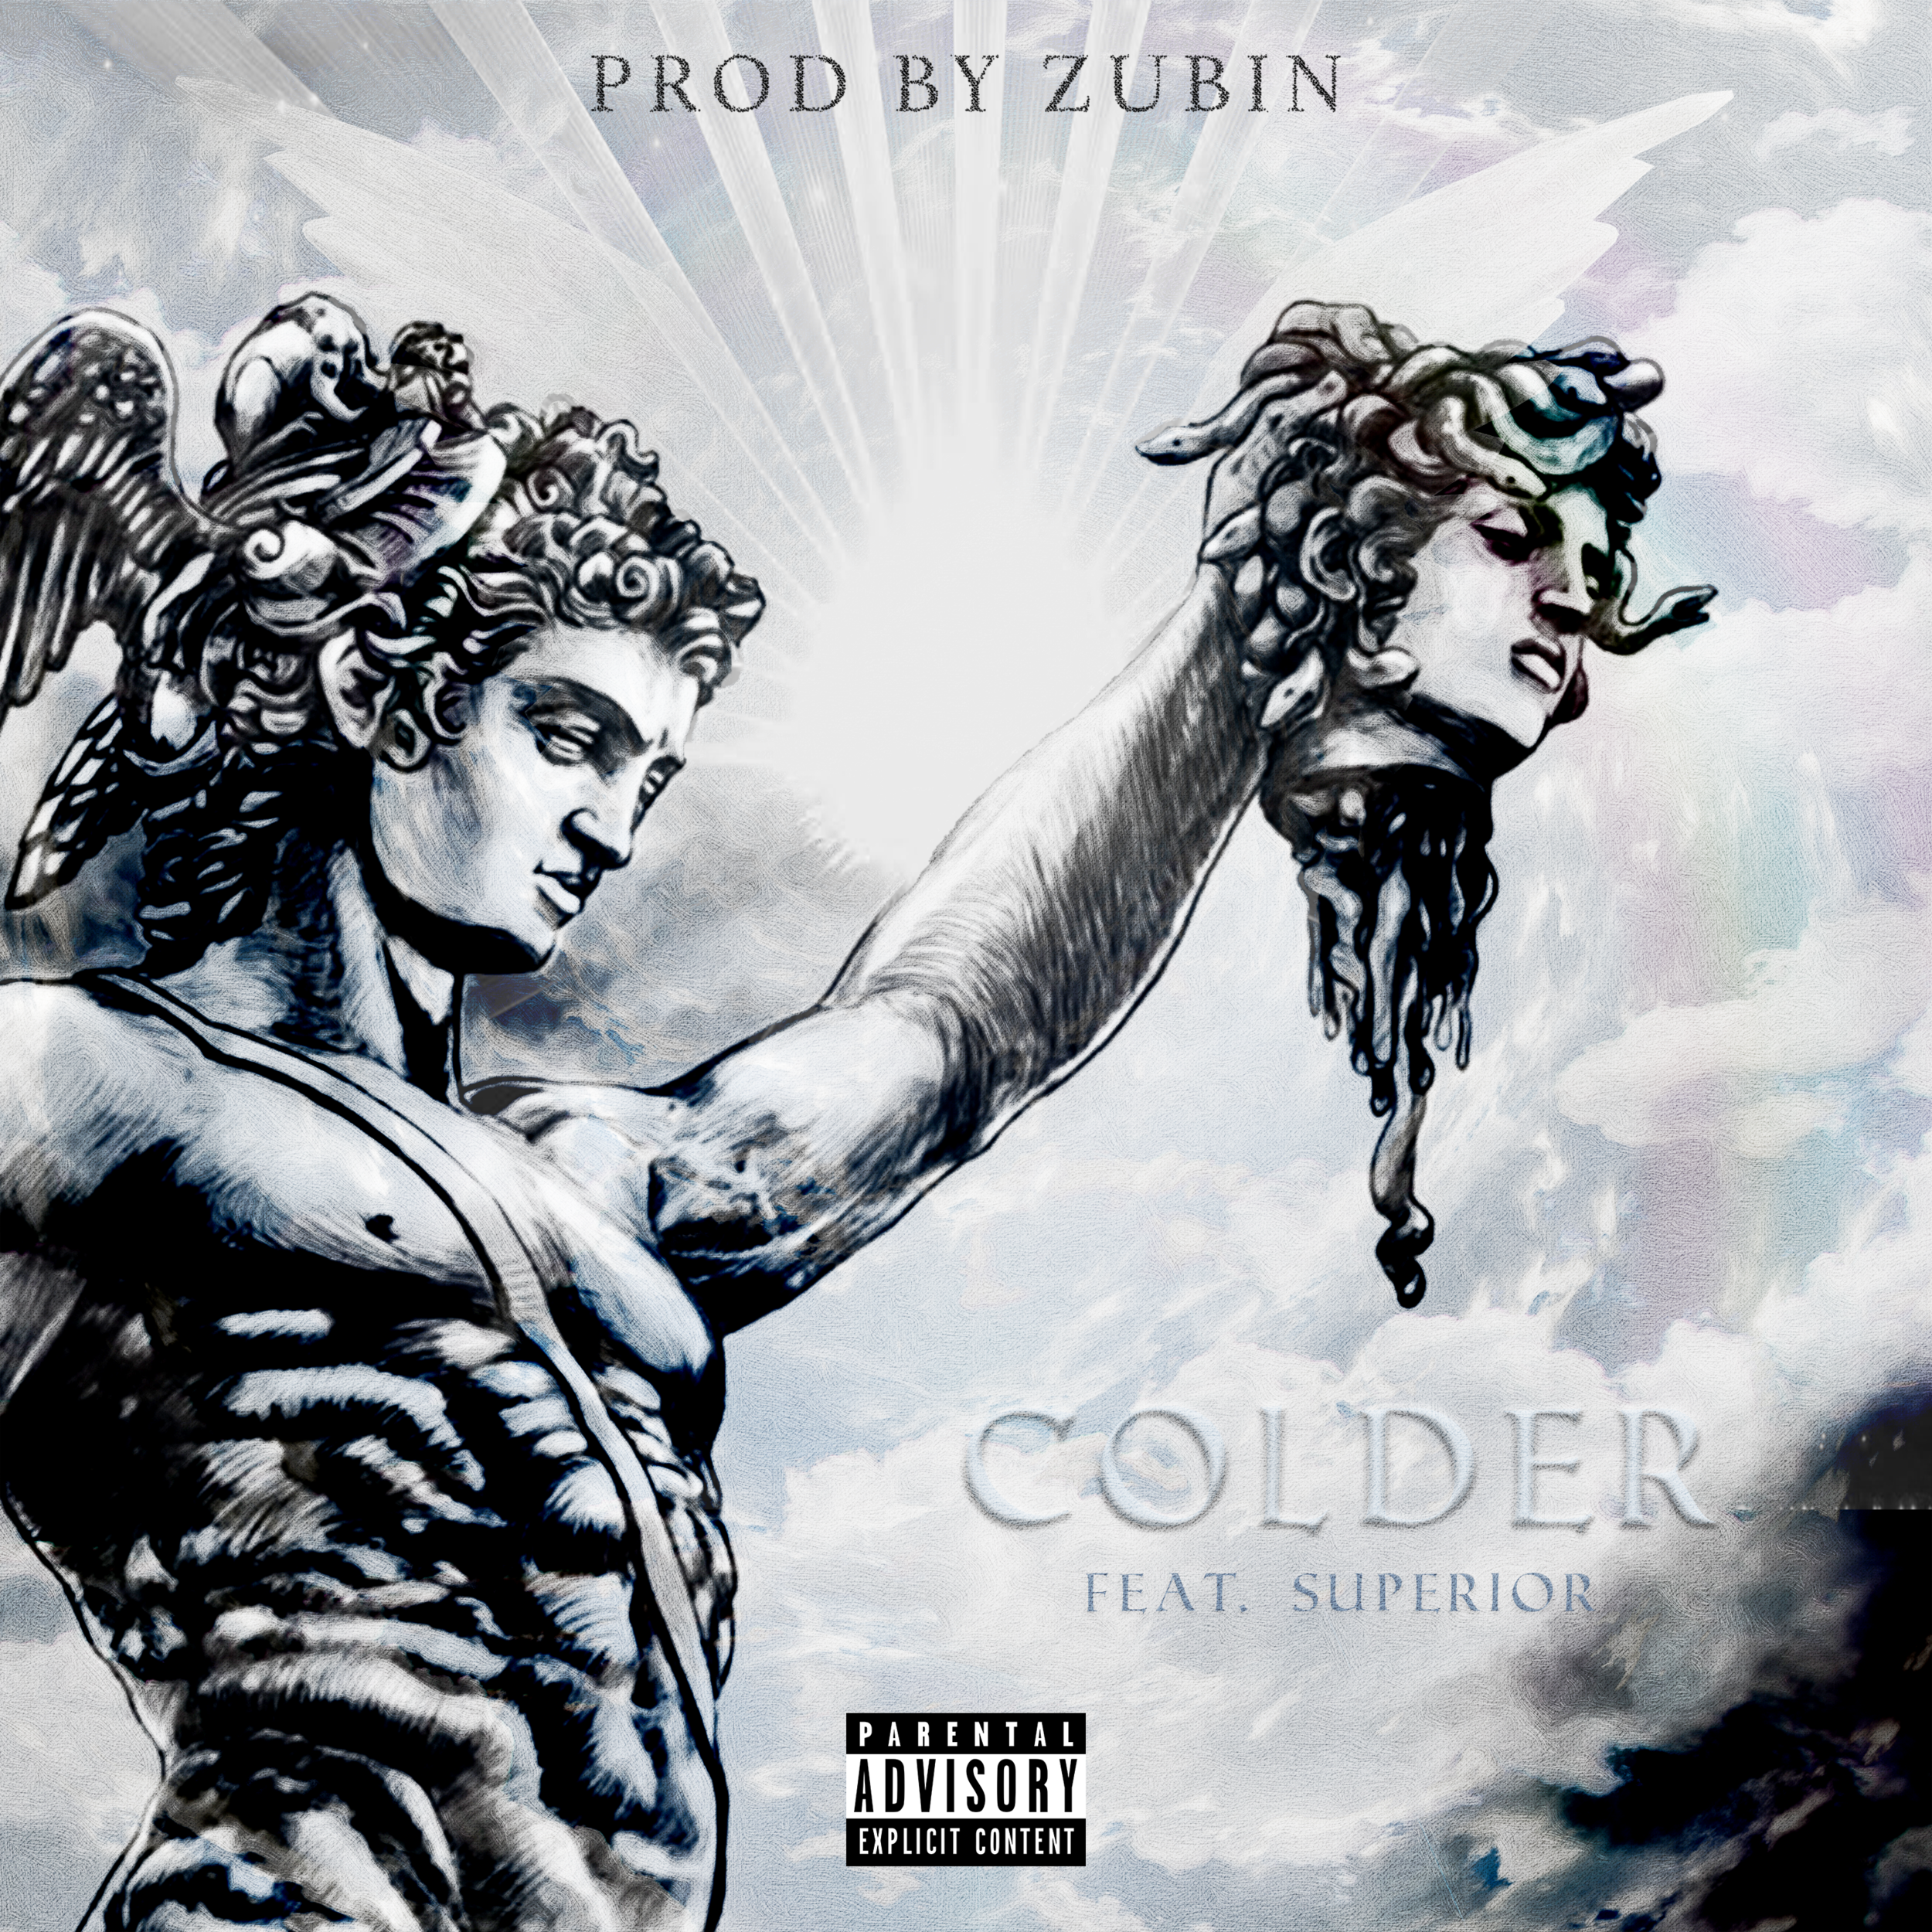 colder cover art FINAL.png